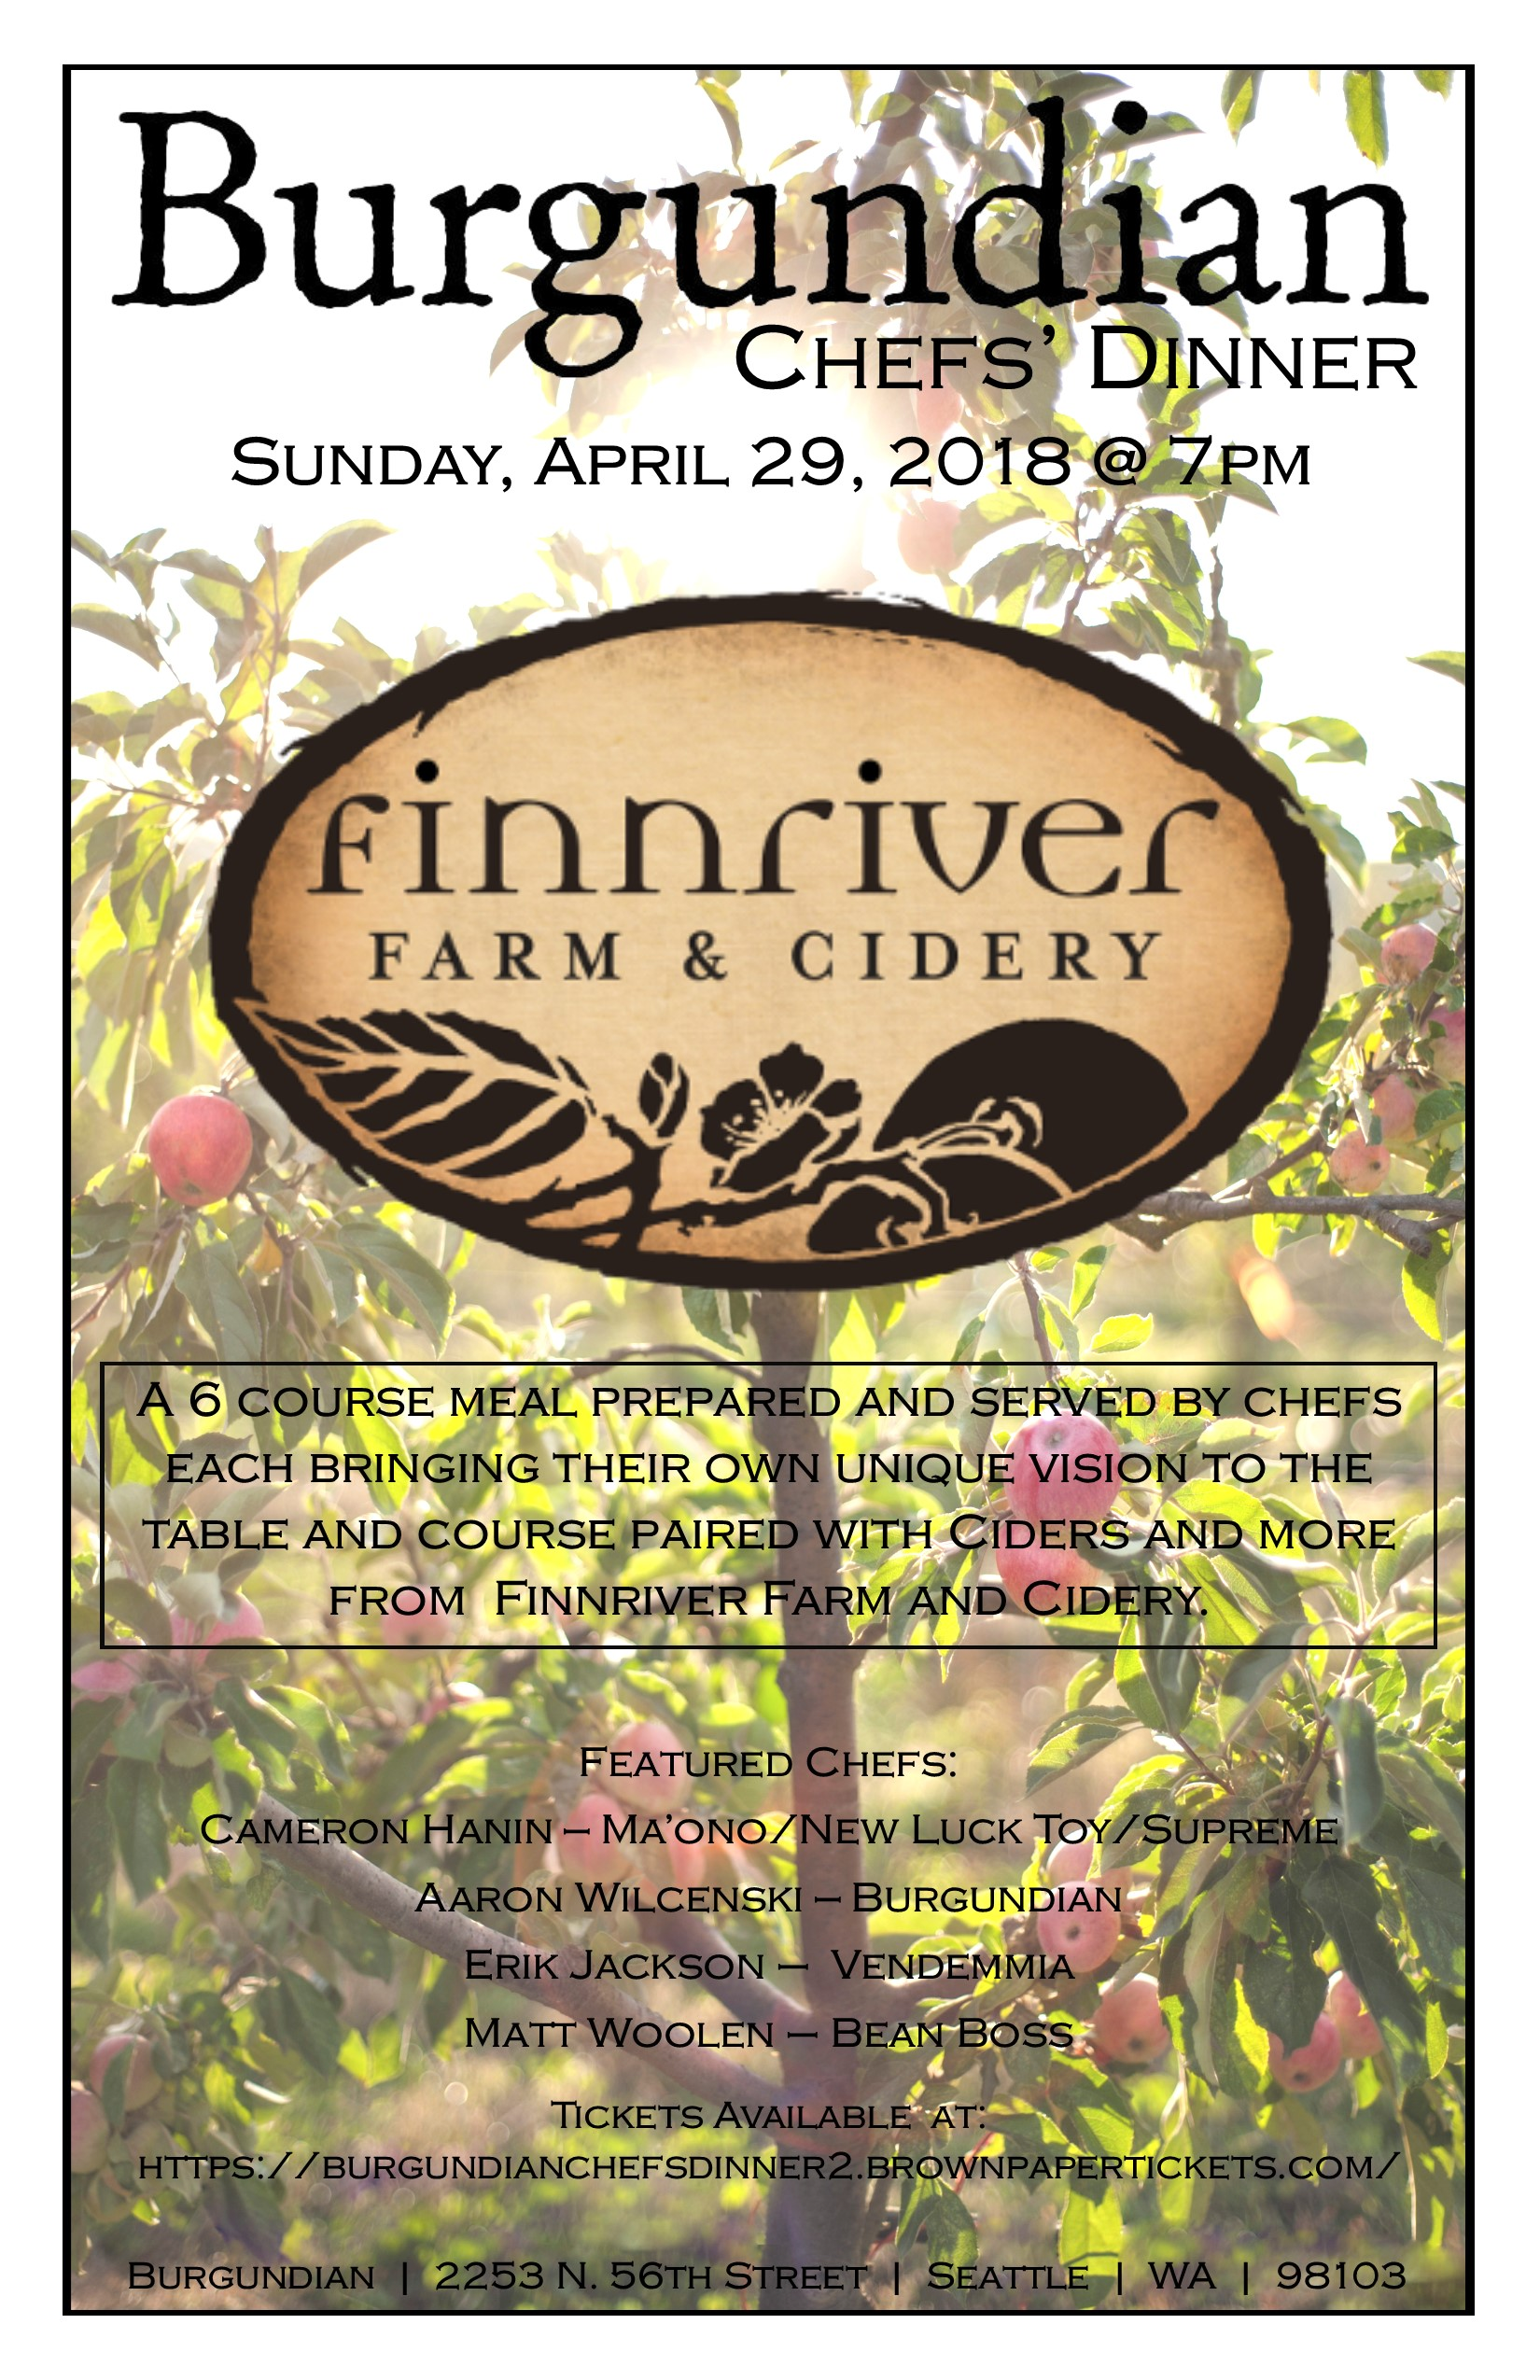 Burgundian Chefs Dinner with Finnriver Farm and Cidery-Sunday, April 29th, 2018